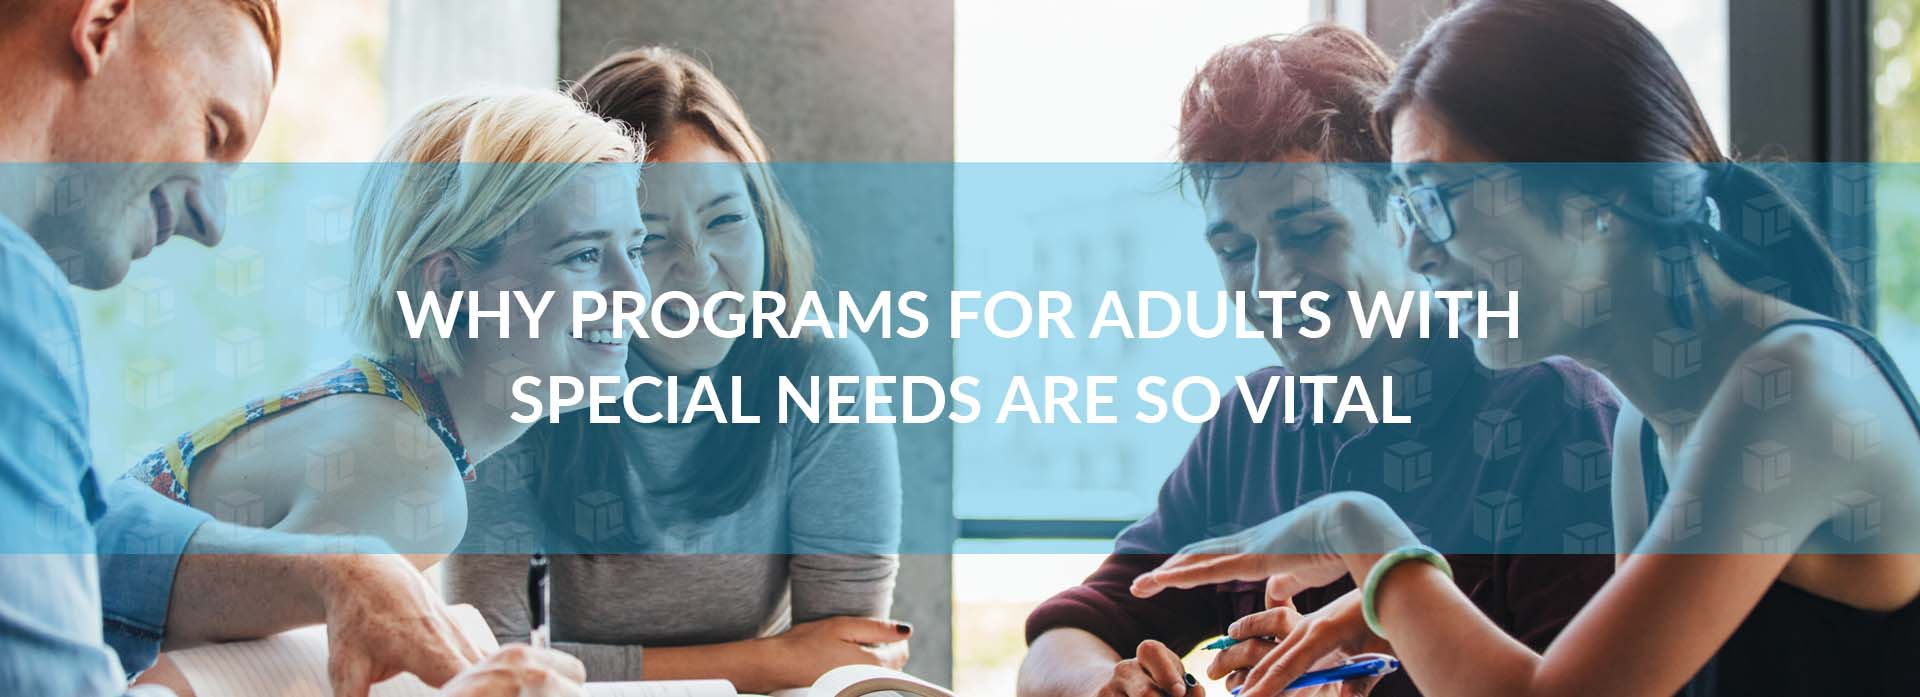 Why Programs For Adults With Special Needs Are So Vital